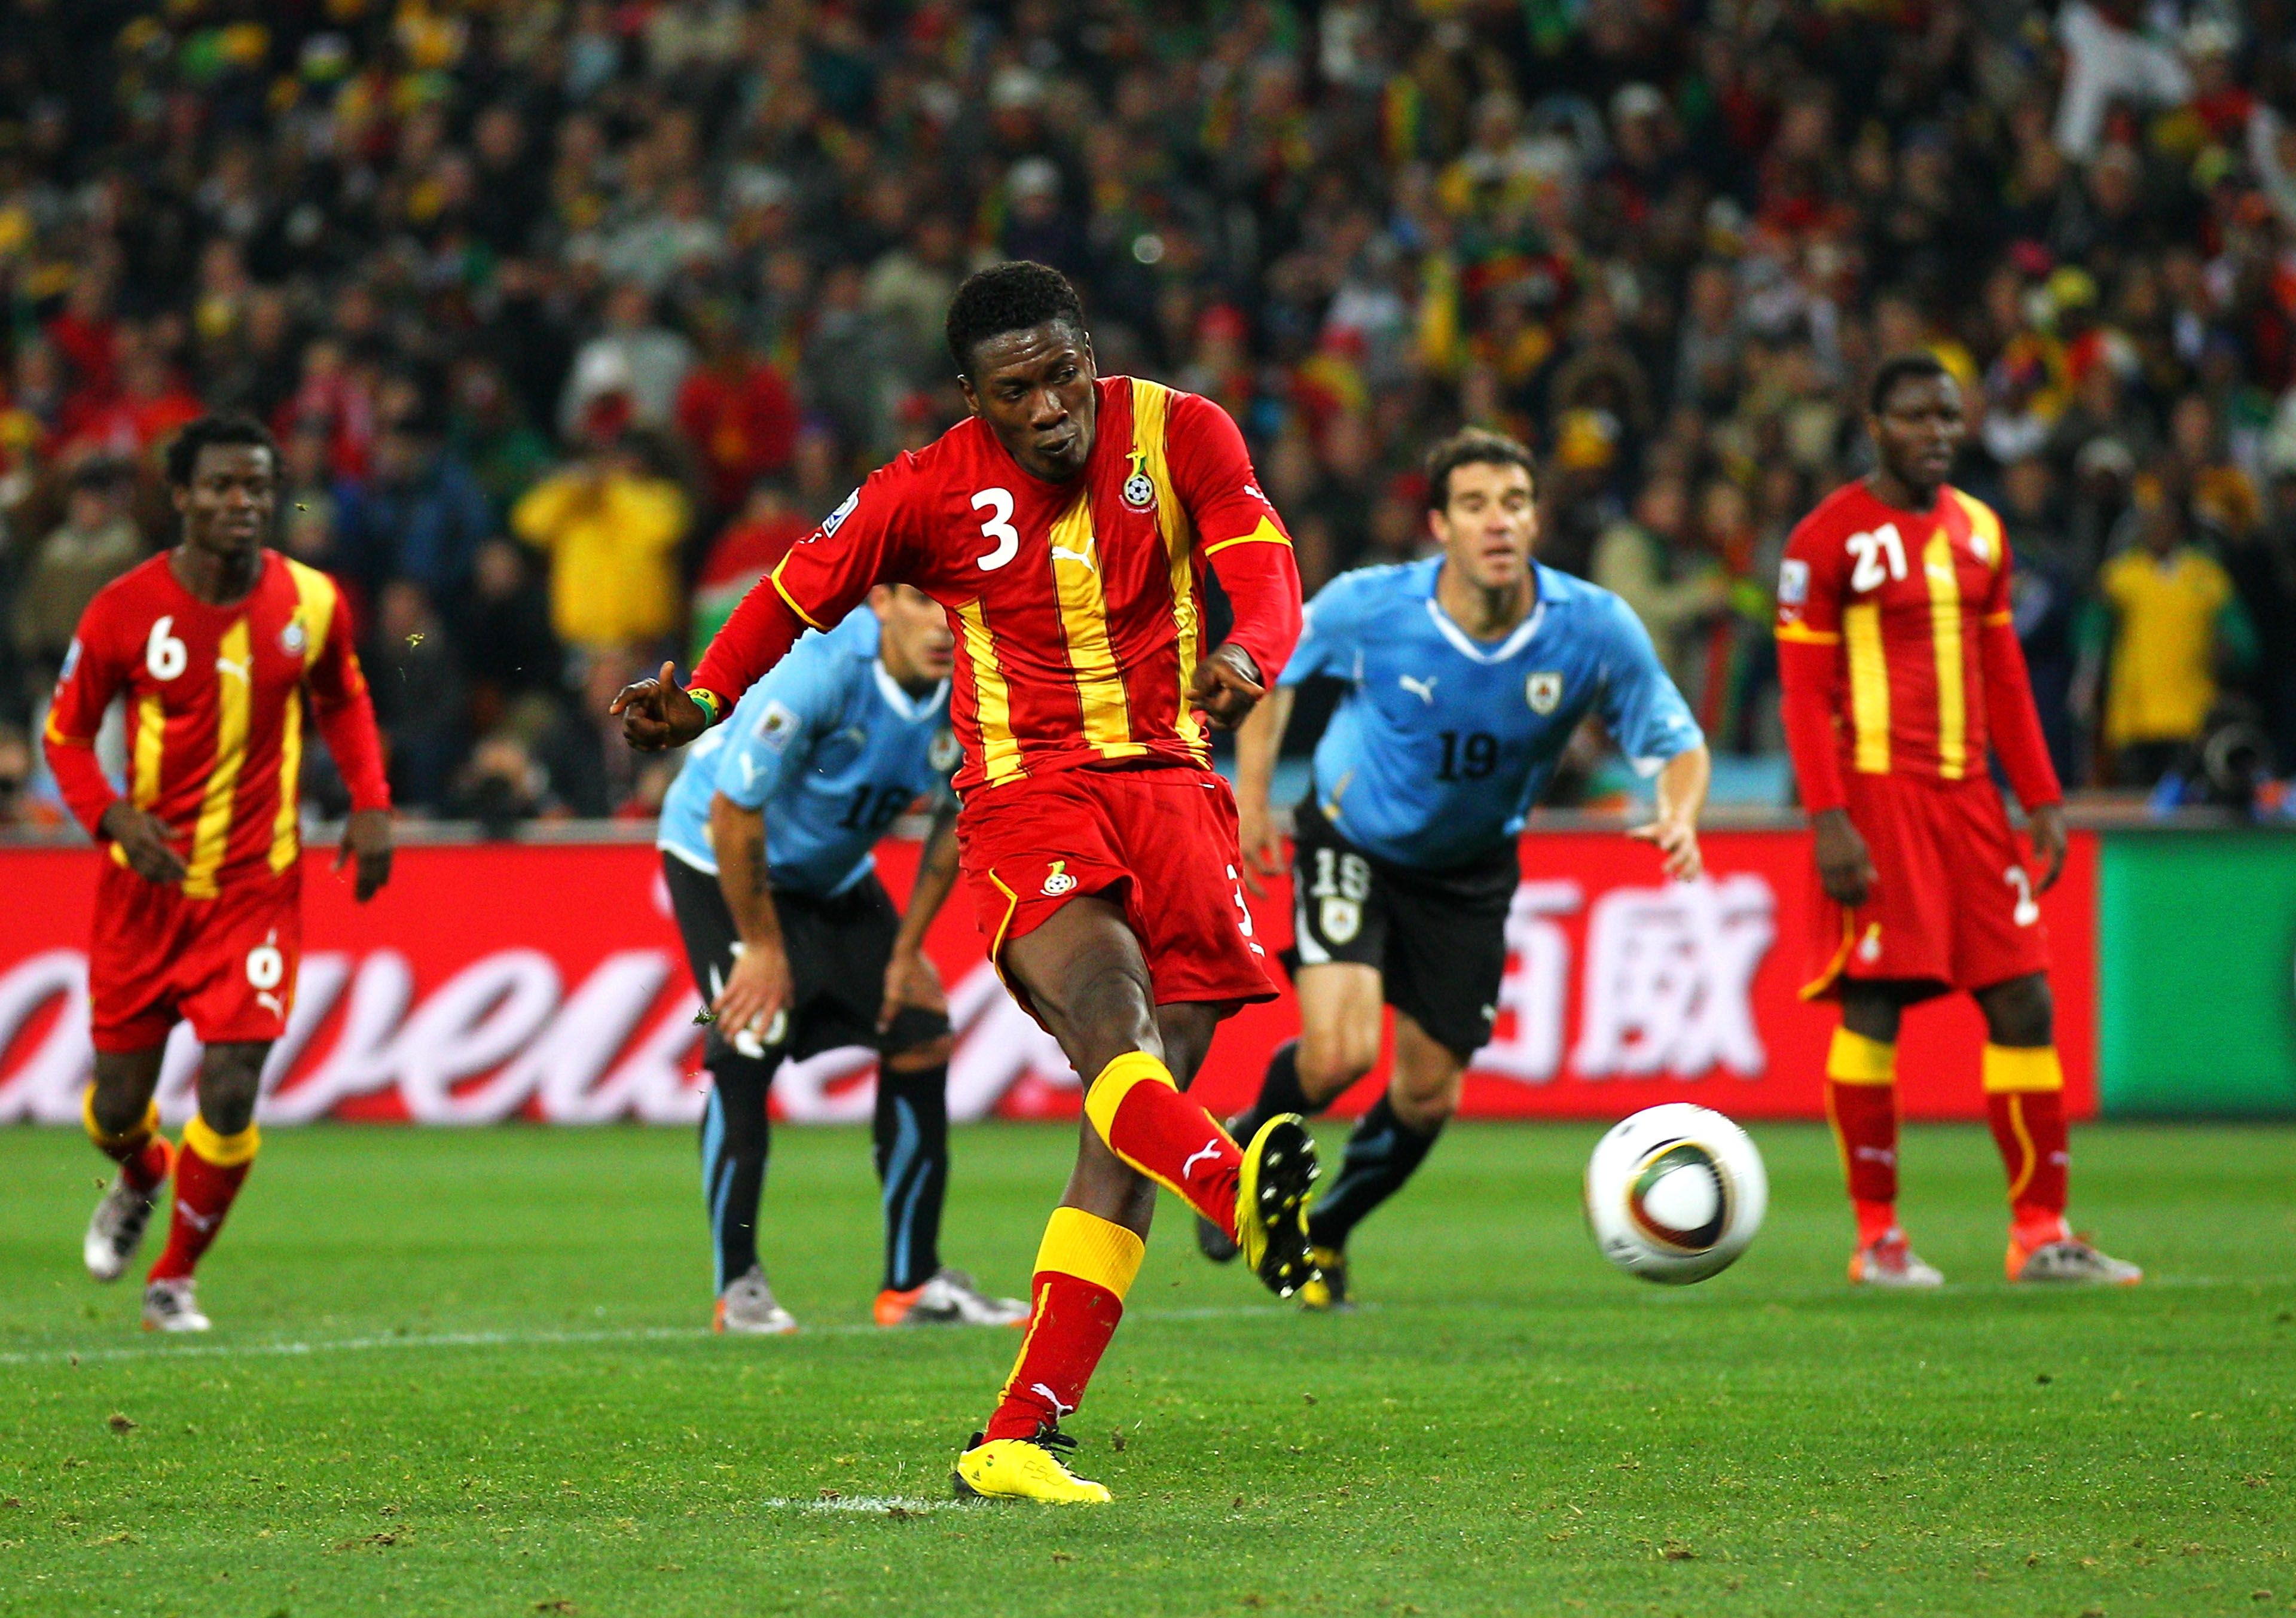 JOHANNESBURG, SOUTH AFRICA - JULY 02:  Asamoah Gyan of Ghana shoots a late penalty high during the 2010 FIFA World Cup South Africa Quarter Final match between Uruguay and Ghana at the Soccer City stadium on July 2, 2010 in Johannesburg, South Africa.  (P